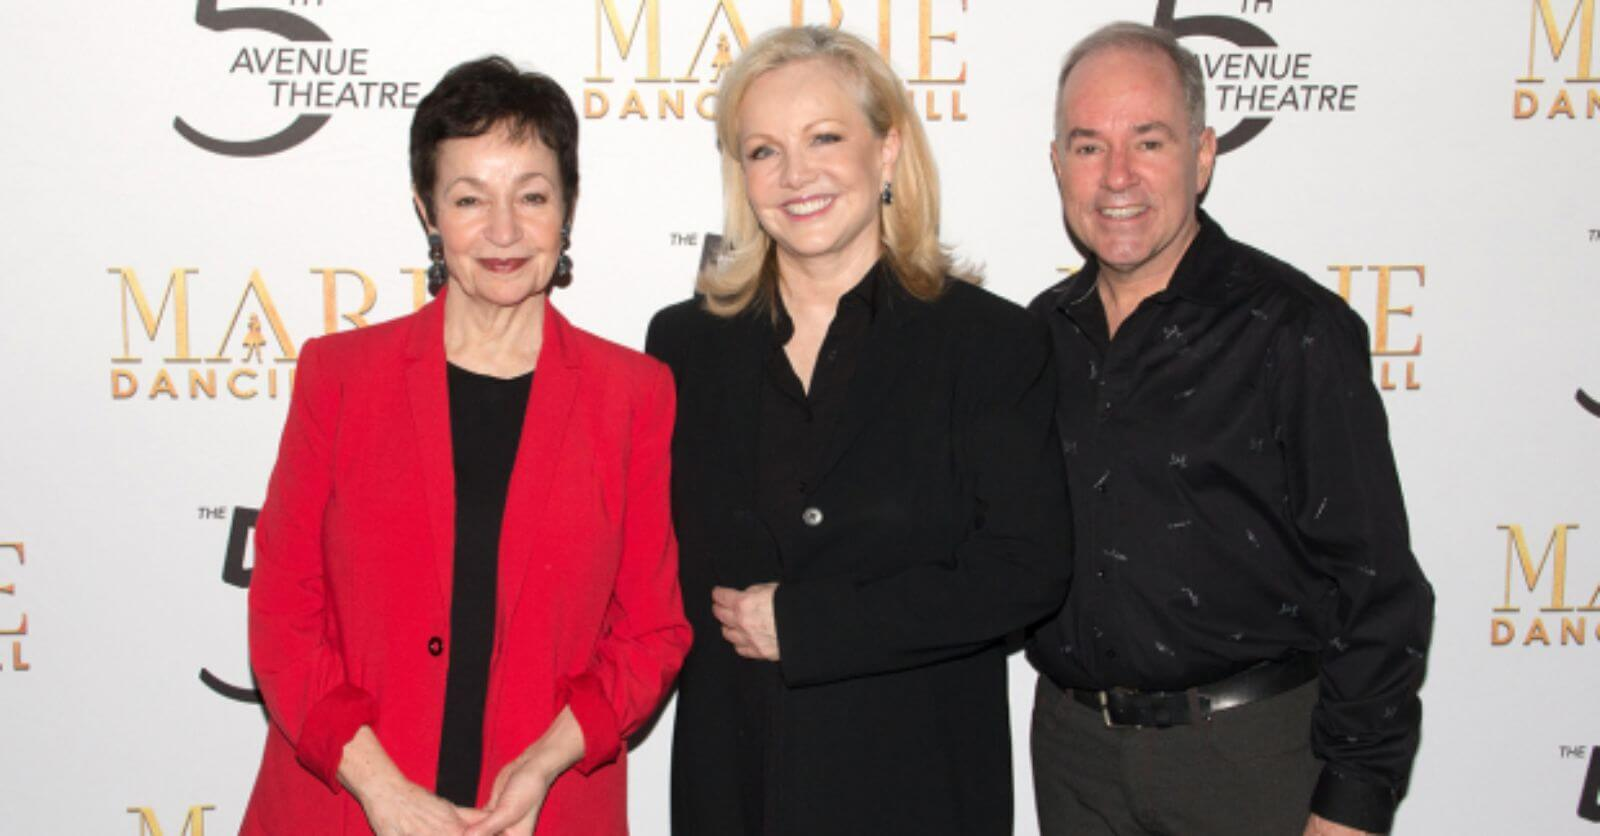 Lynn Ahrens (in a red blazer), Susan Stroman (in a black suit), and Stephen Flaherty (in black printed button up) at the opening night of Marie.